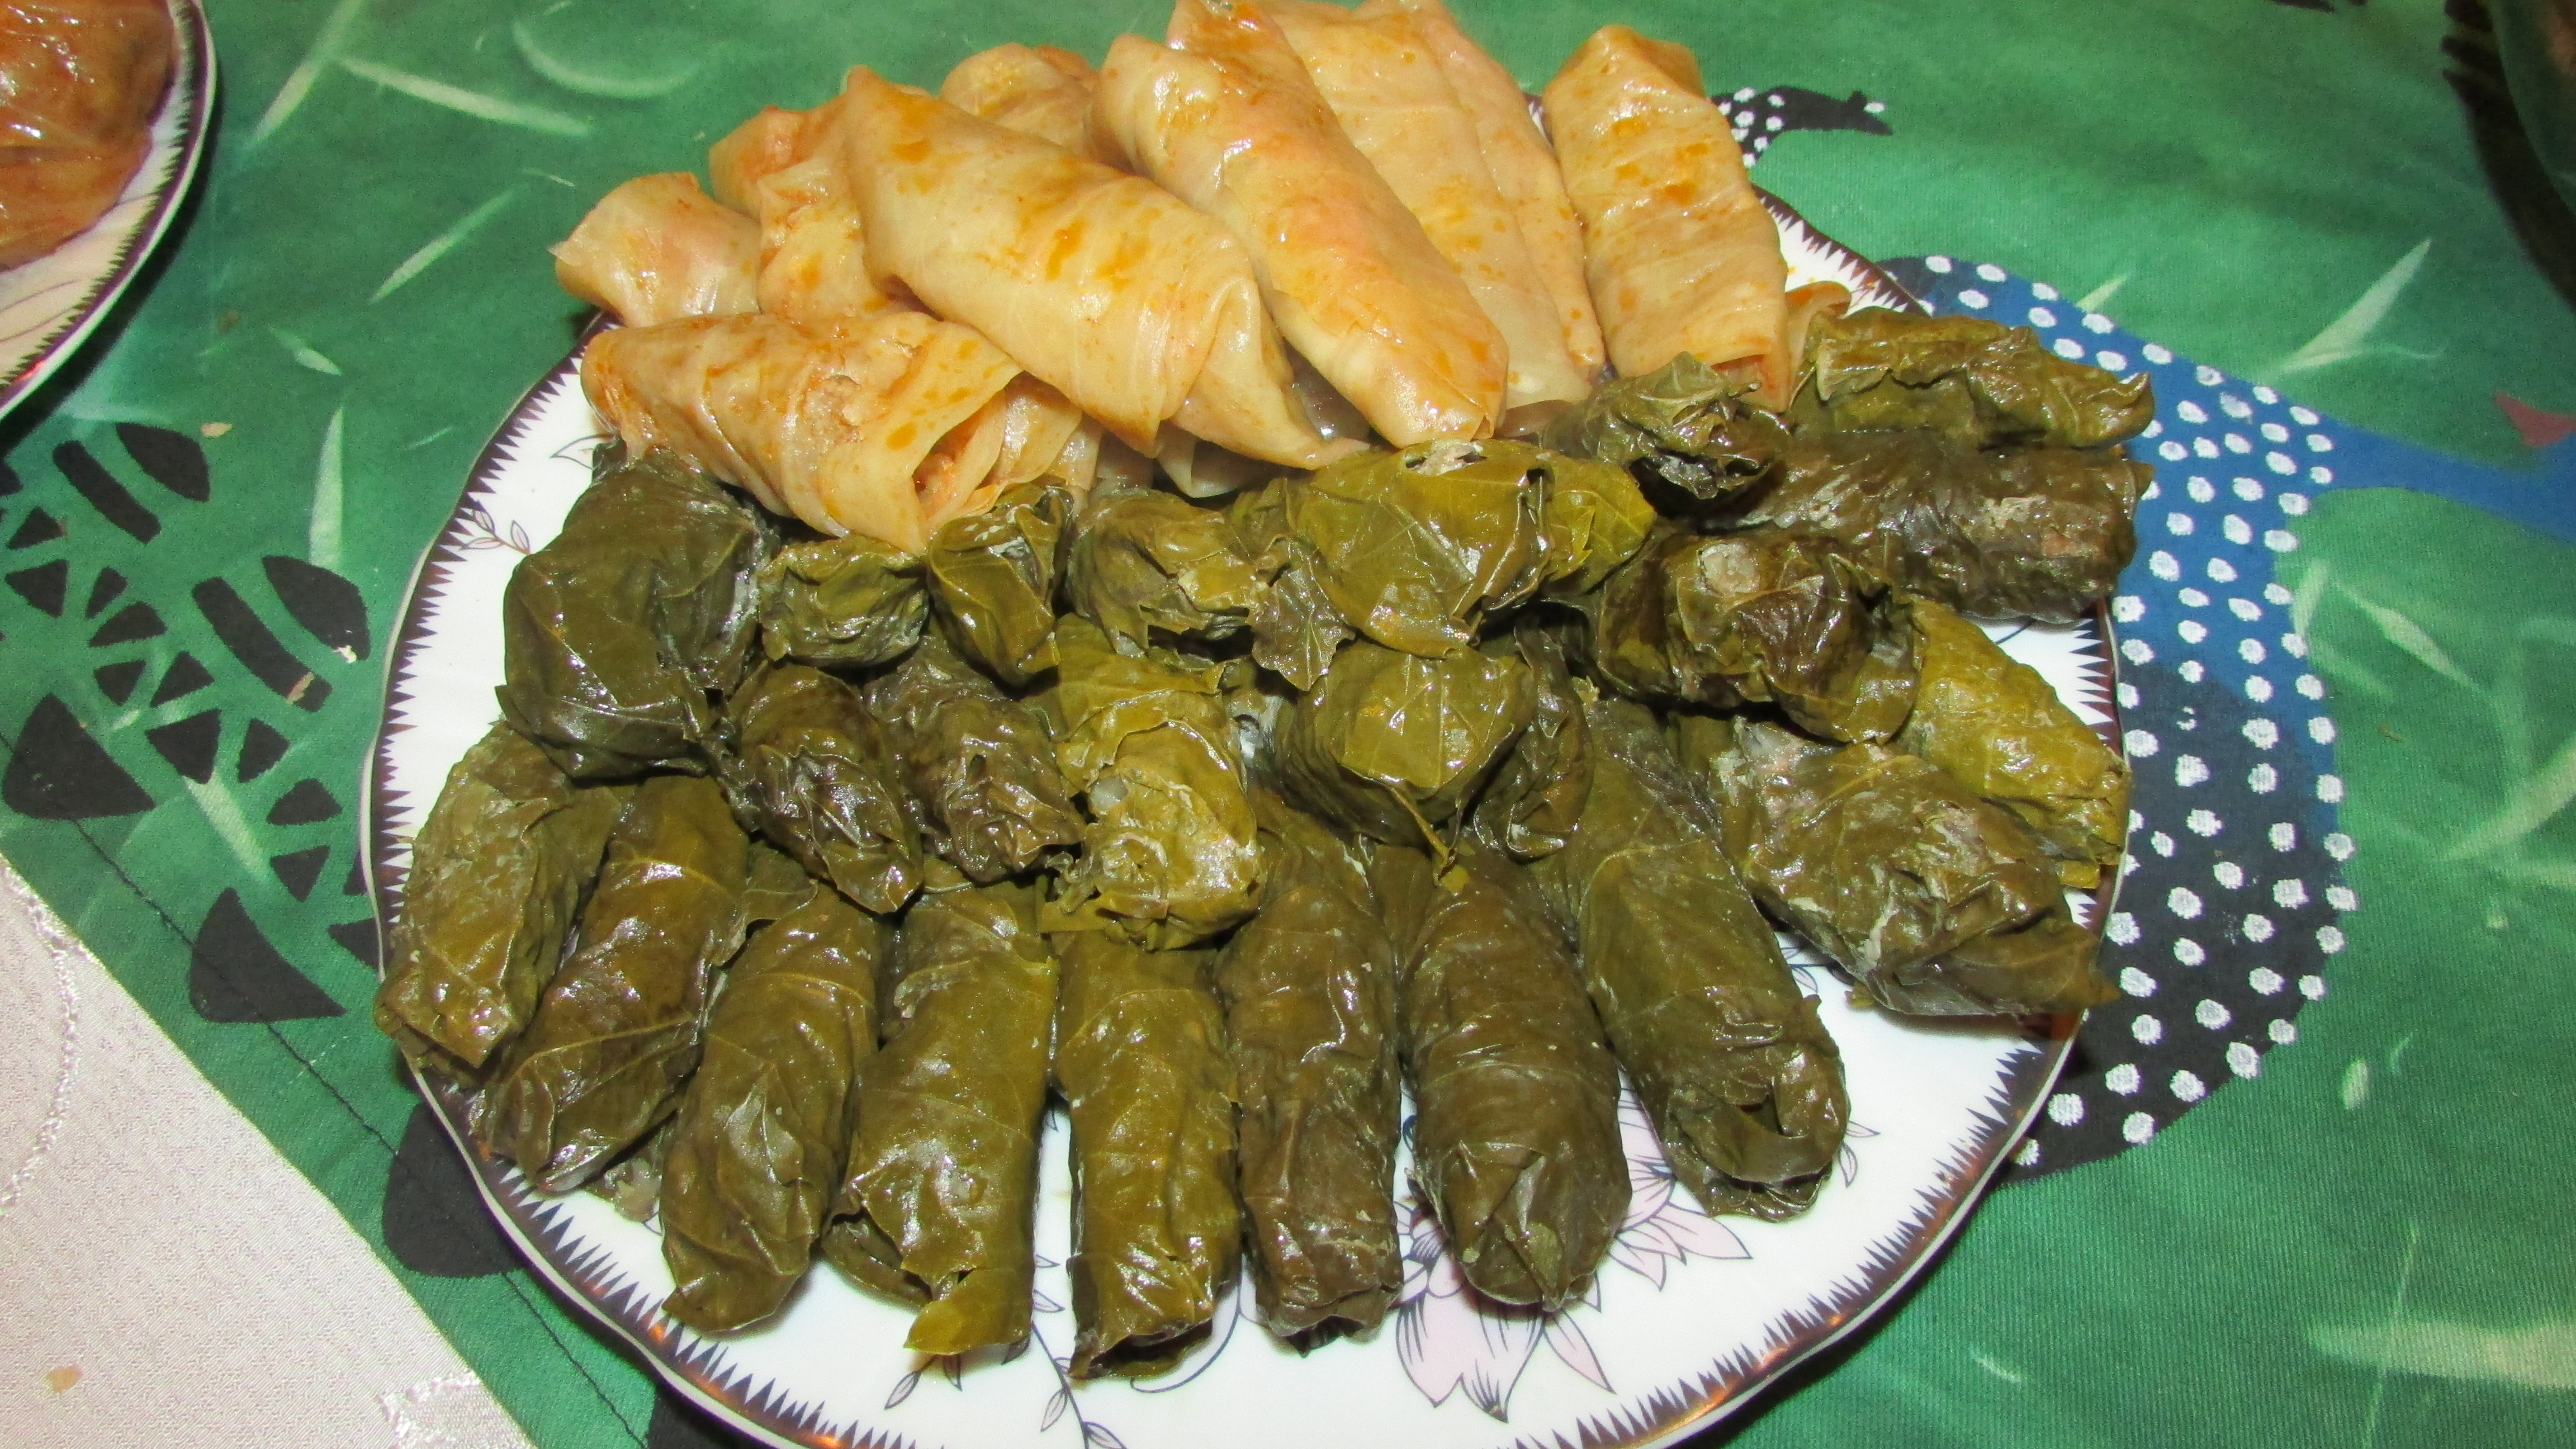 Lenten cabbage and grape leaf tolma. Photo by Ruzanna Tsaturyan, Smithsonian Institution.